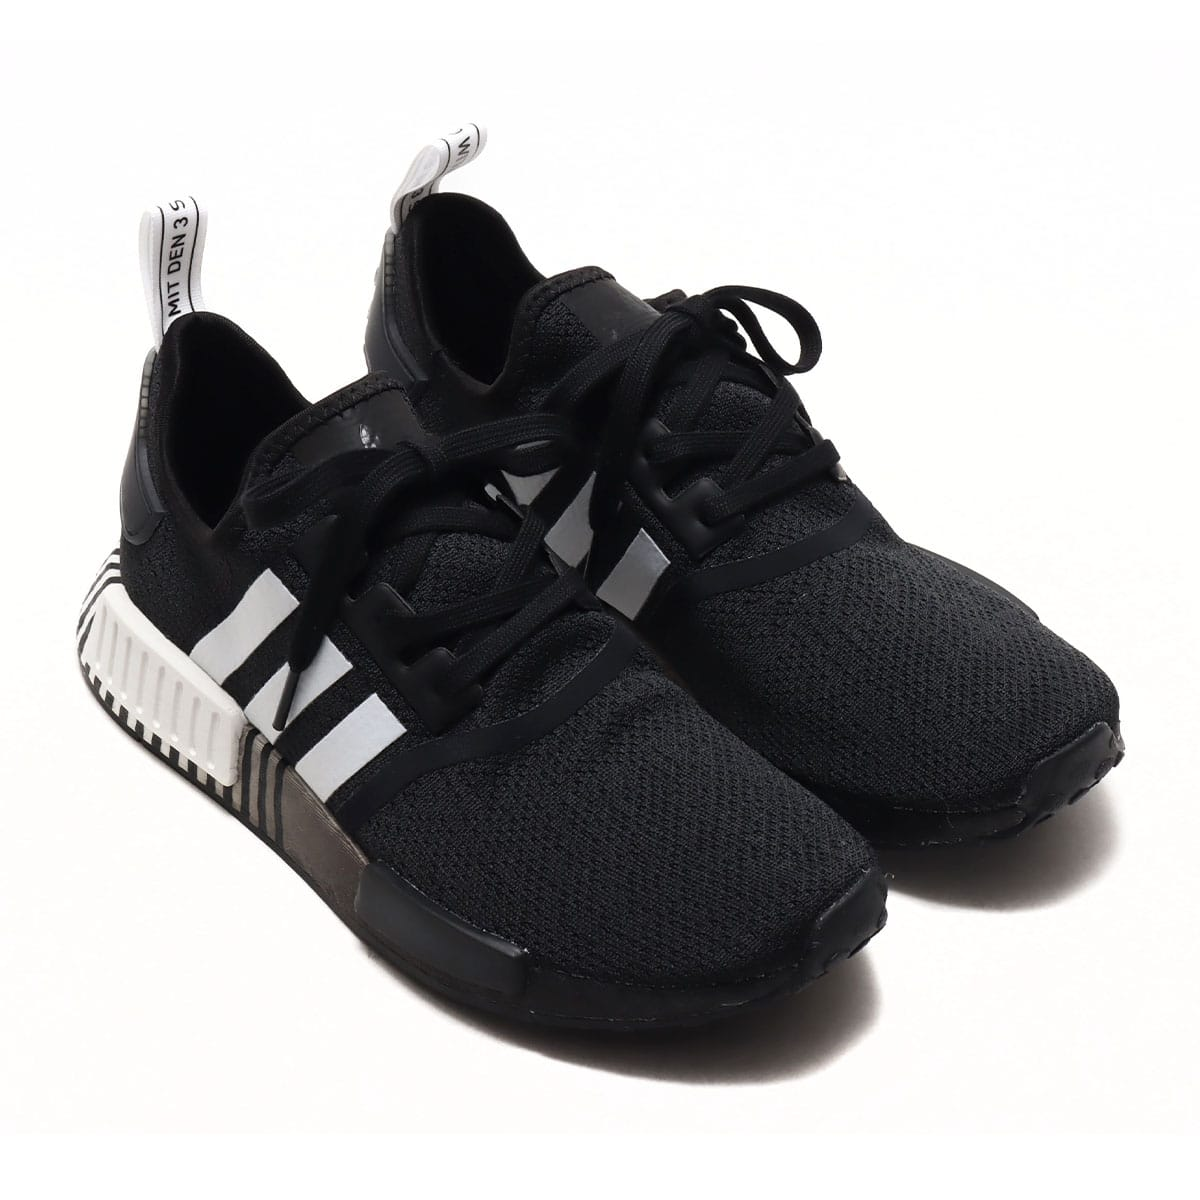 adidas NMD_R1 CORE BLACK/FOOTWEAR WHITE/CORE BLACK 20SS-I_photo_large